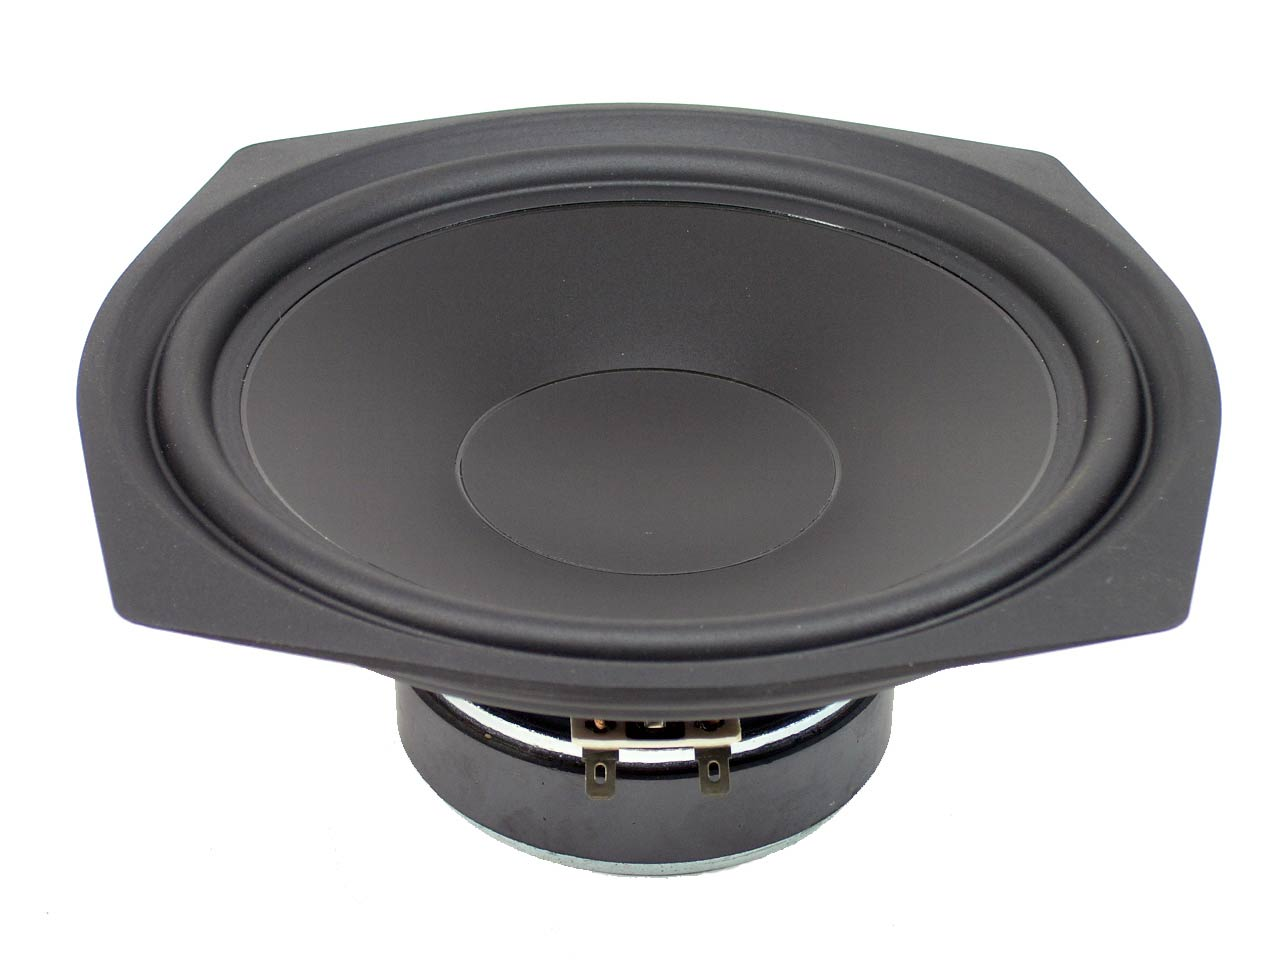 JBL Control 28 Factory Speaker Replacement Woofer, 8 Ohms, 124-58001-00